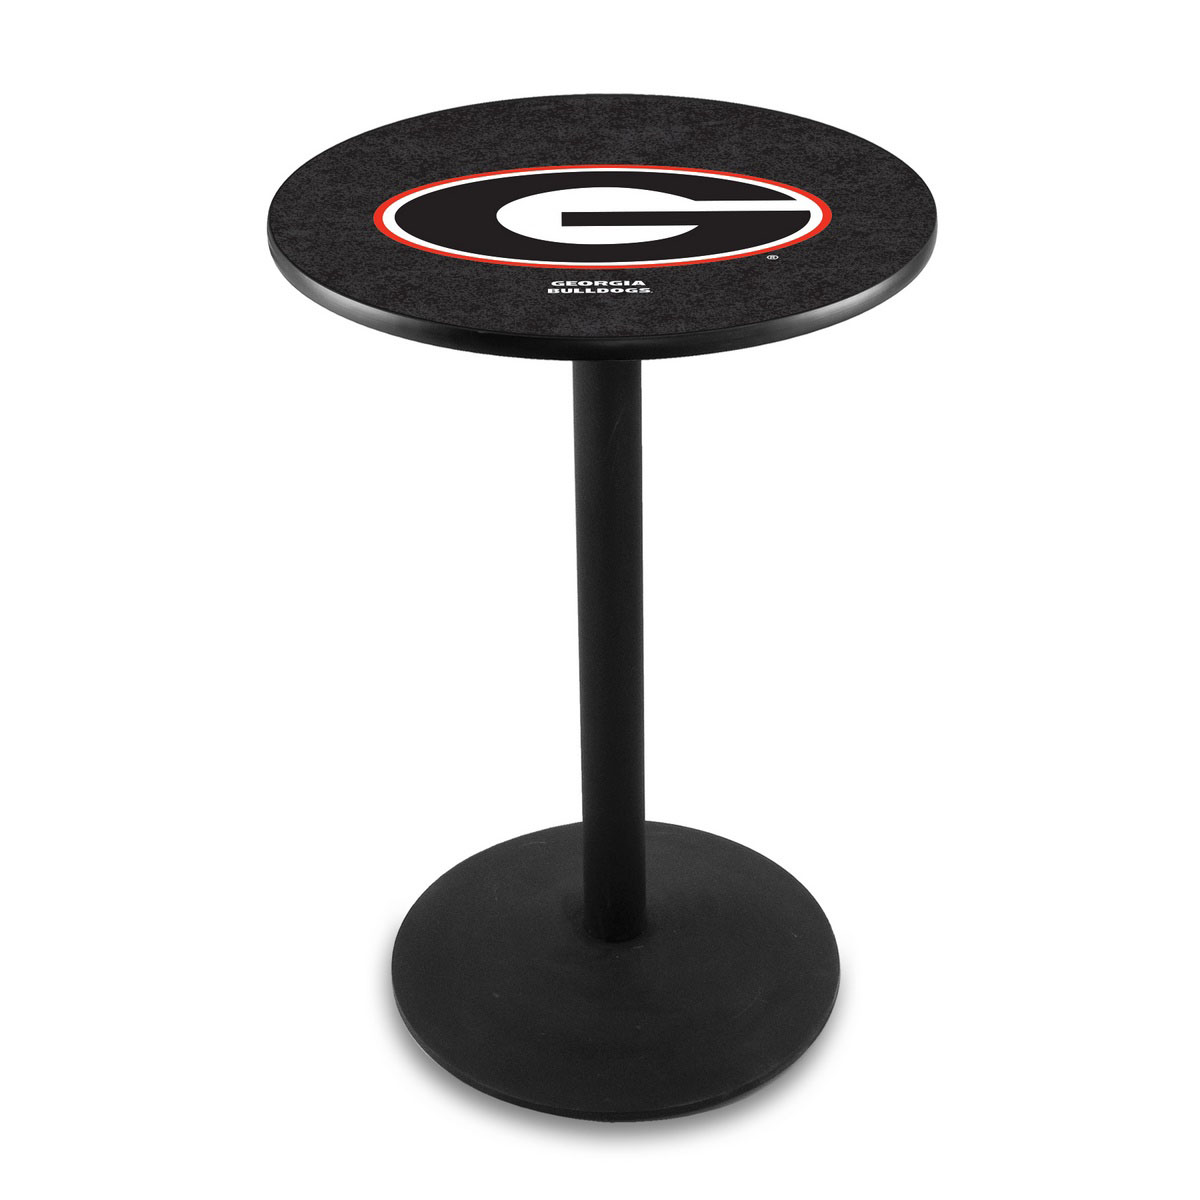 Exquisite University Georgia Logo Pub Bar Table Round Stand Product Photo